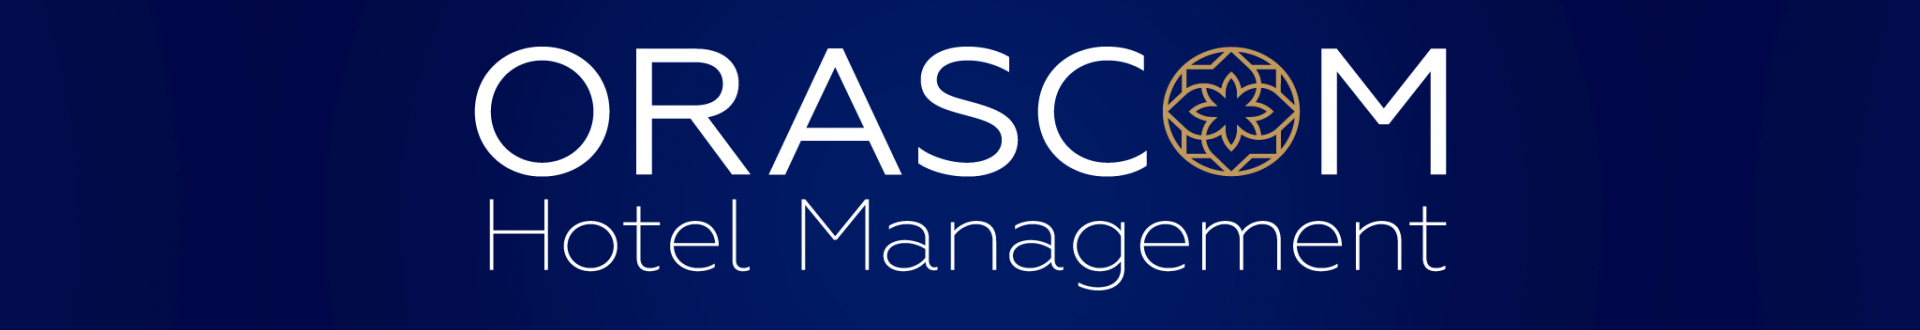 Orascom Hotels Management